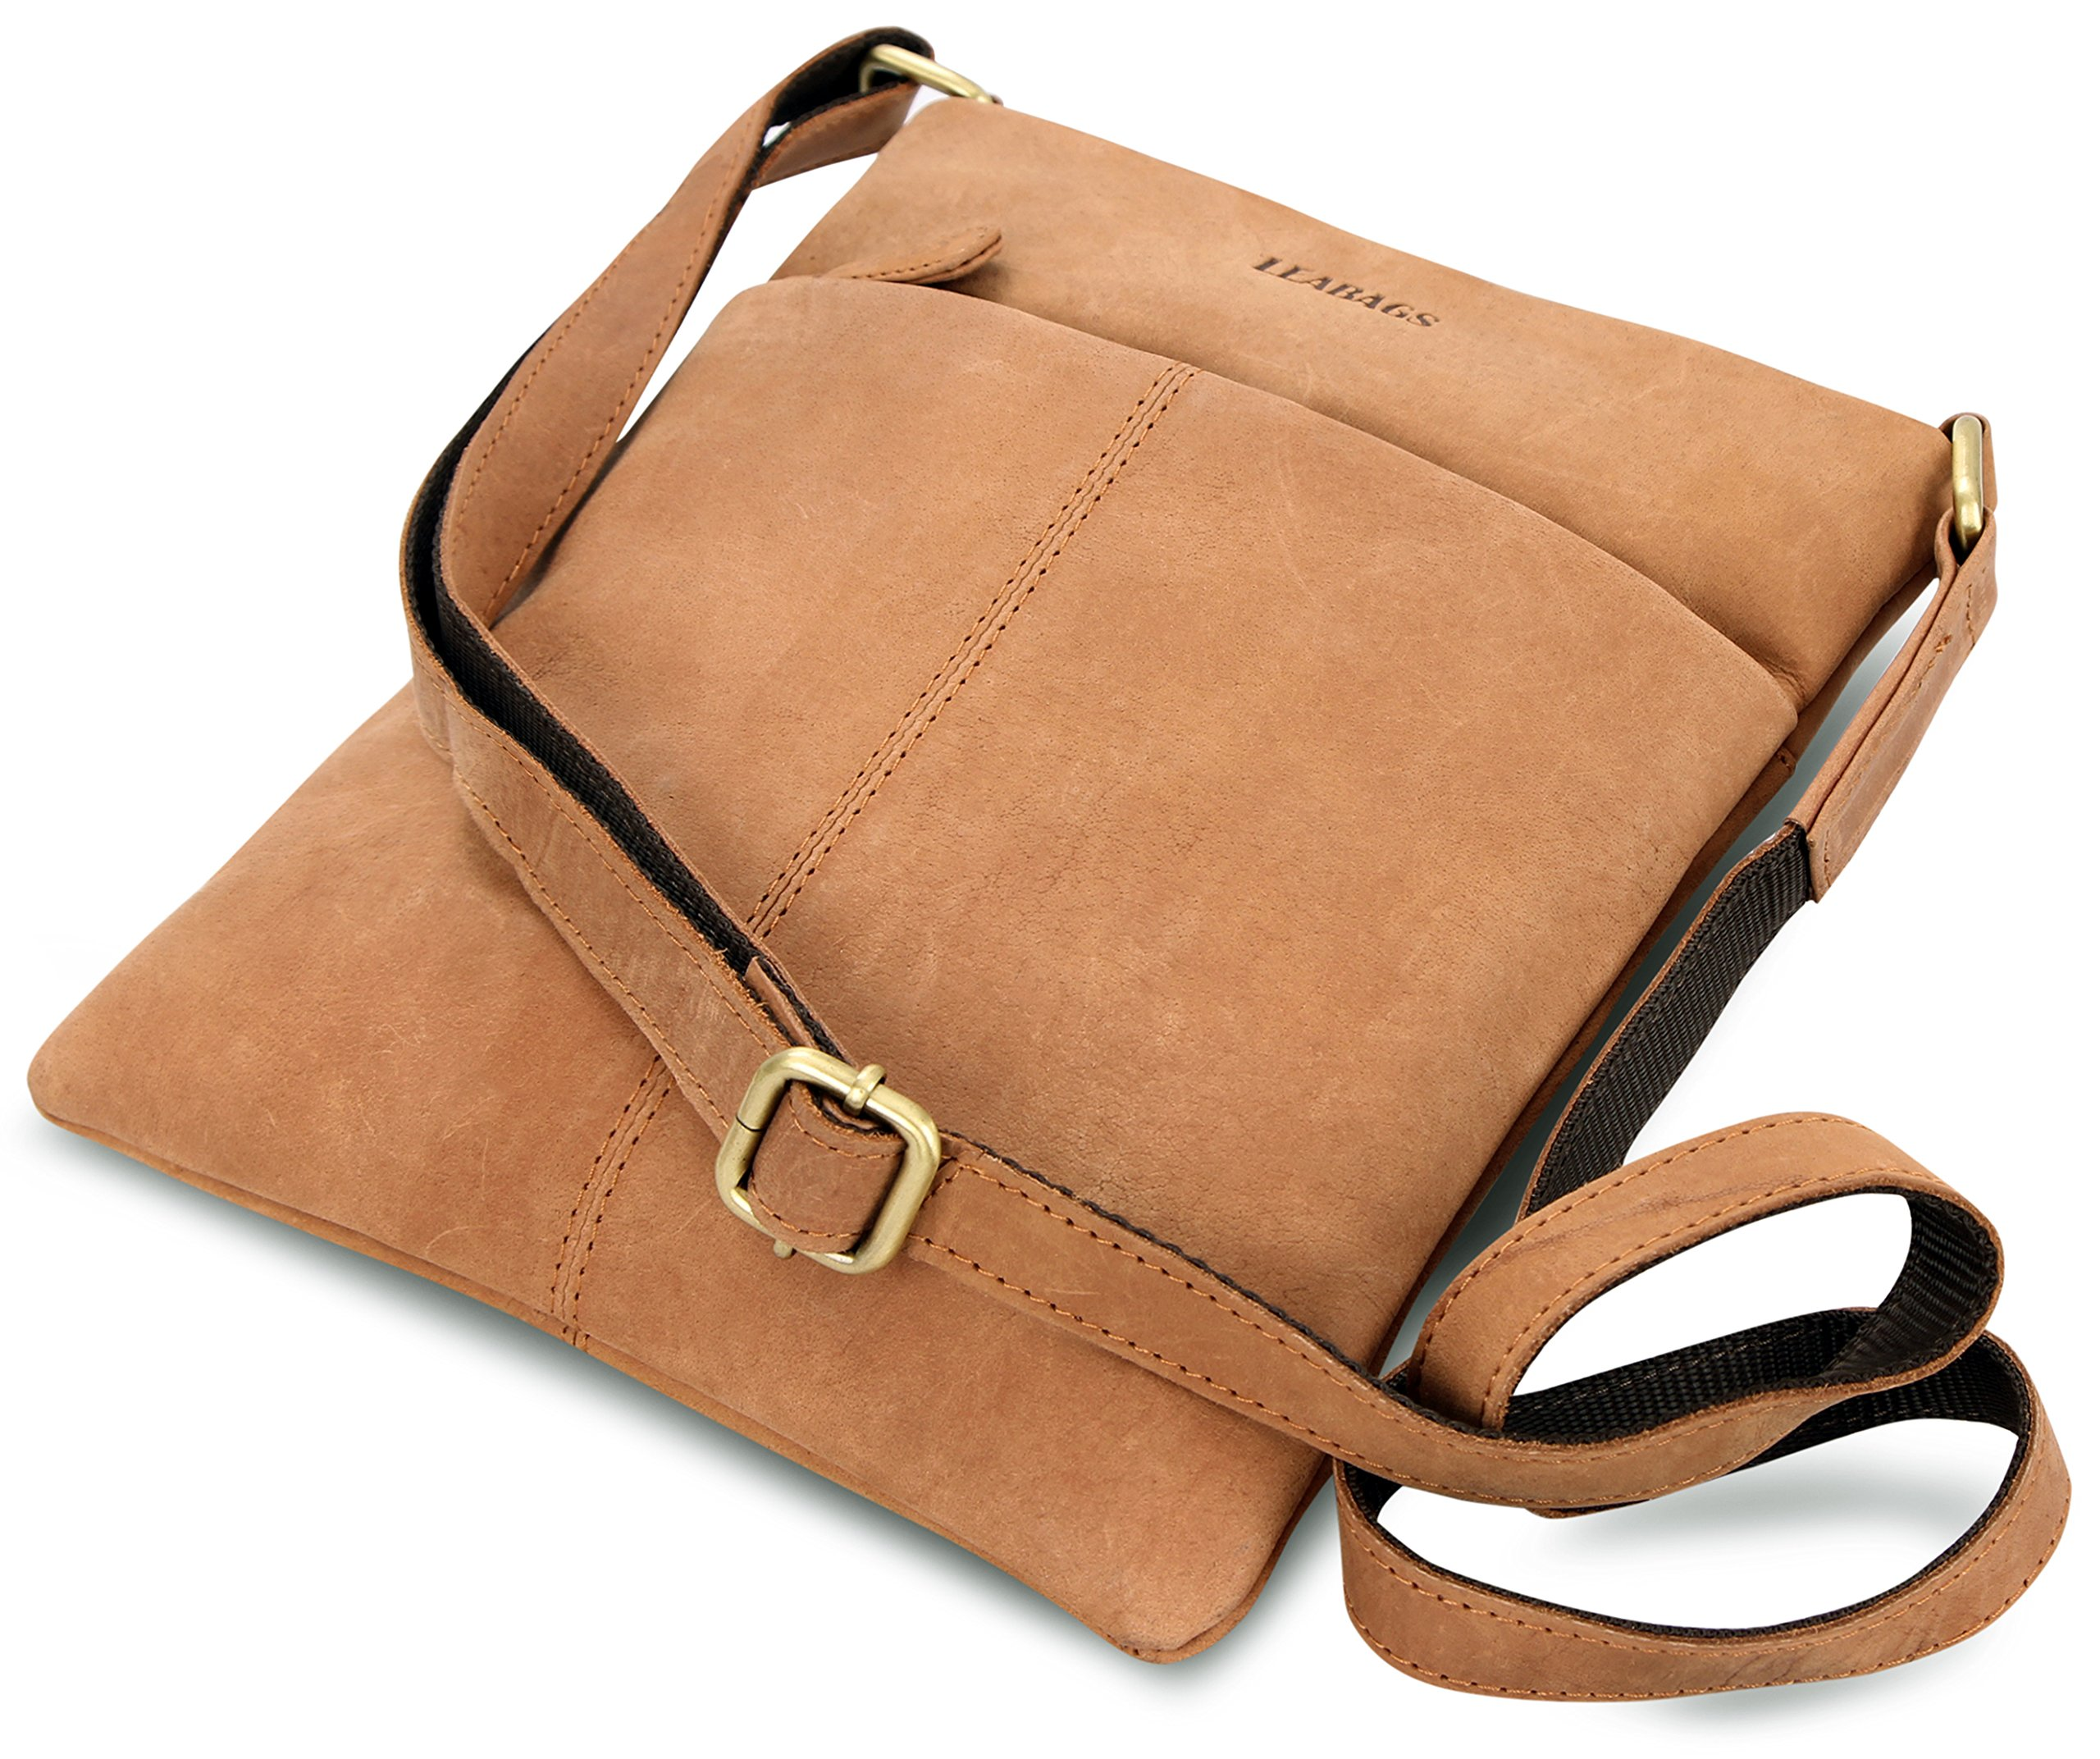 LEABAGS Seattle genuine buffalo leather crossbody bag in vintage style - Brown by LEABAGS (Image #8)